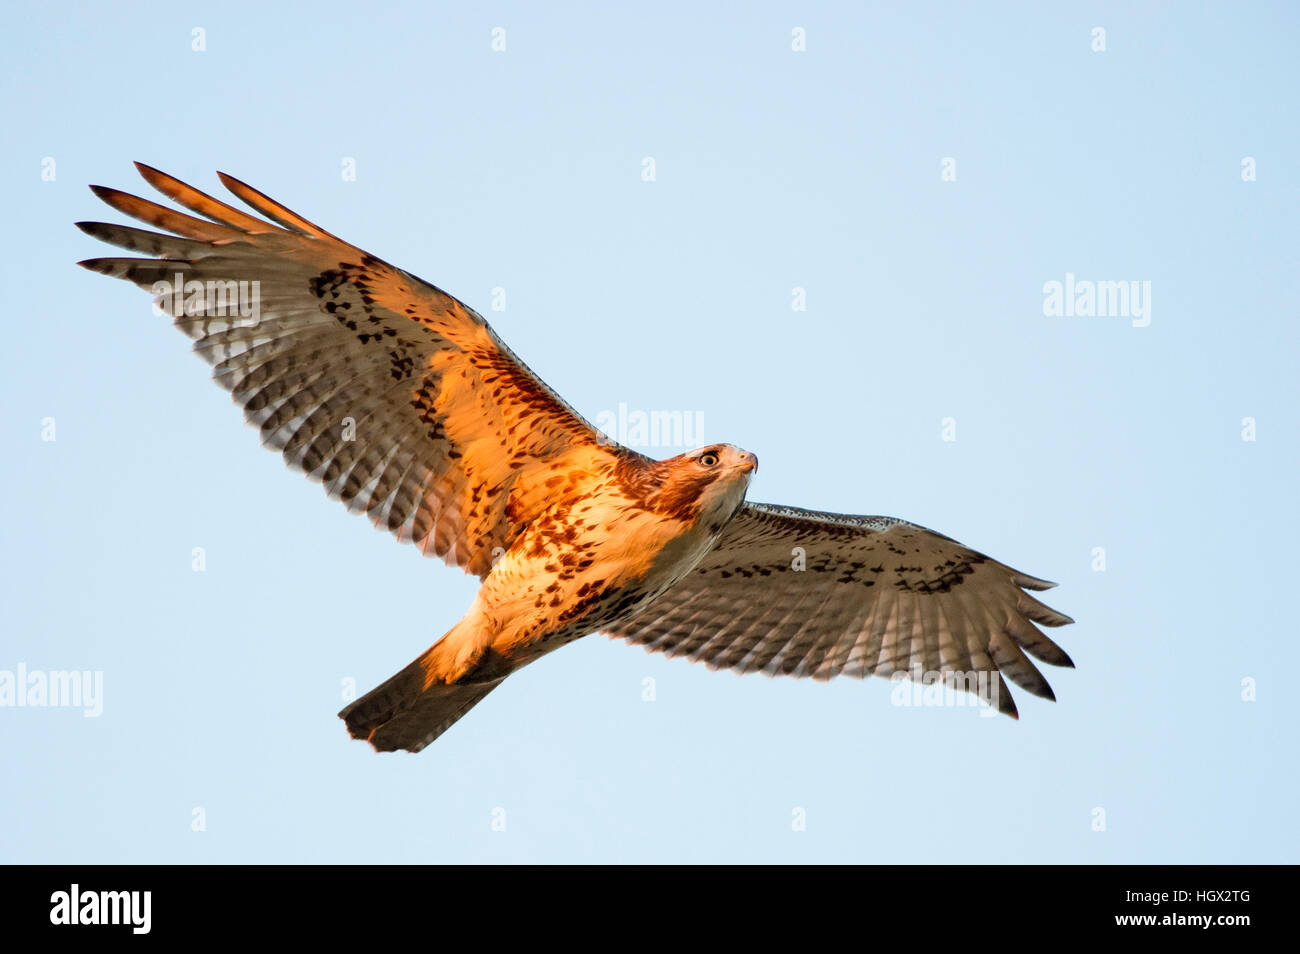 A Red-tailed Hawk flies overhead as the first morning sun shines on its body. Stock Photo